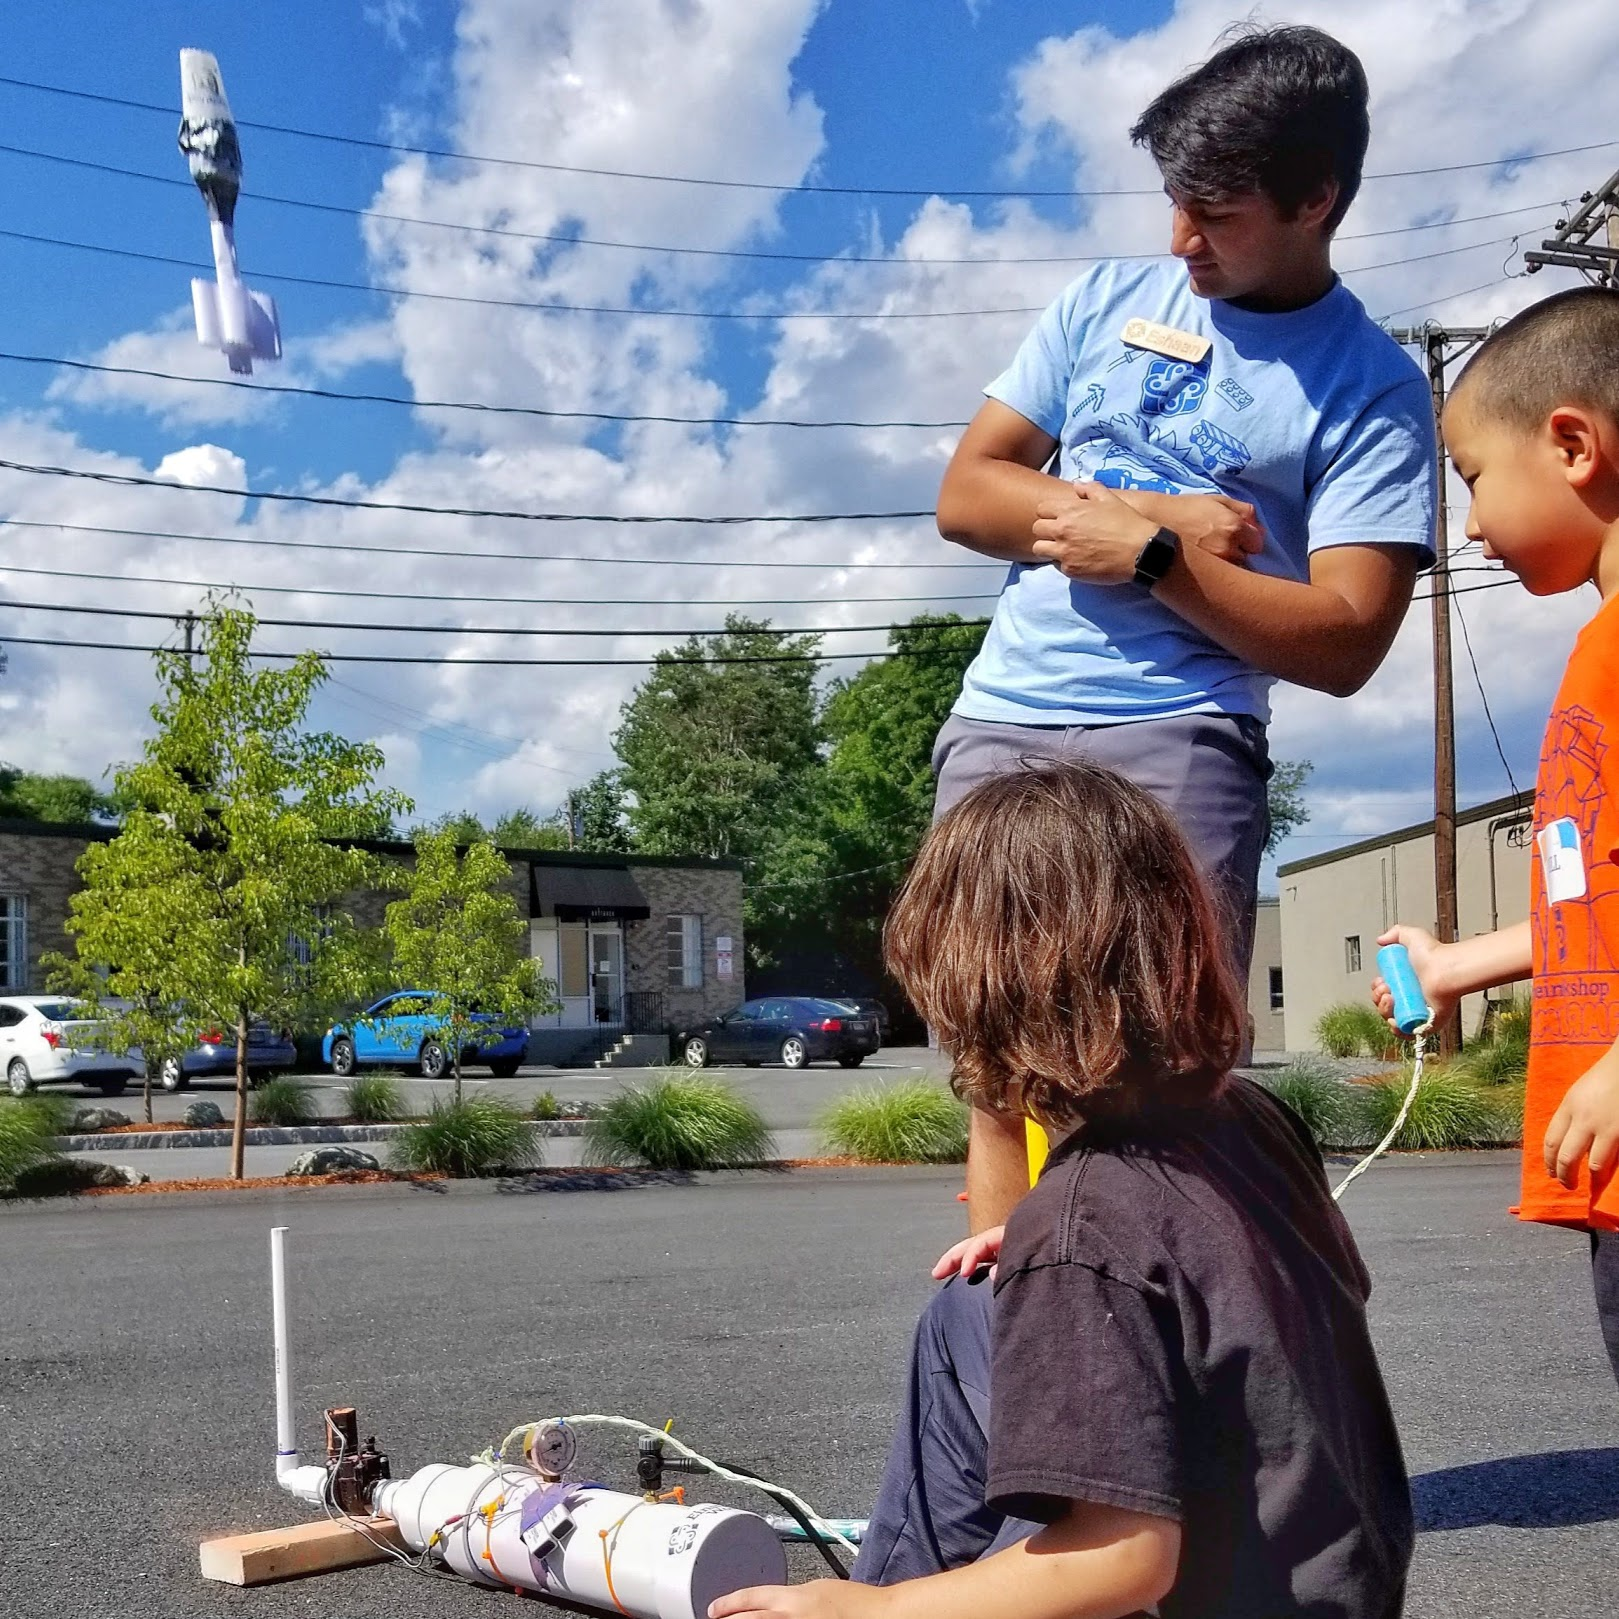 student launching rocket out of compressed air launcher while mentor and another student watch